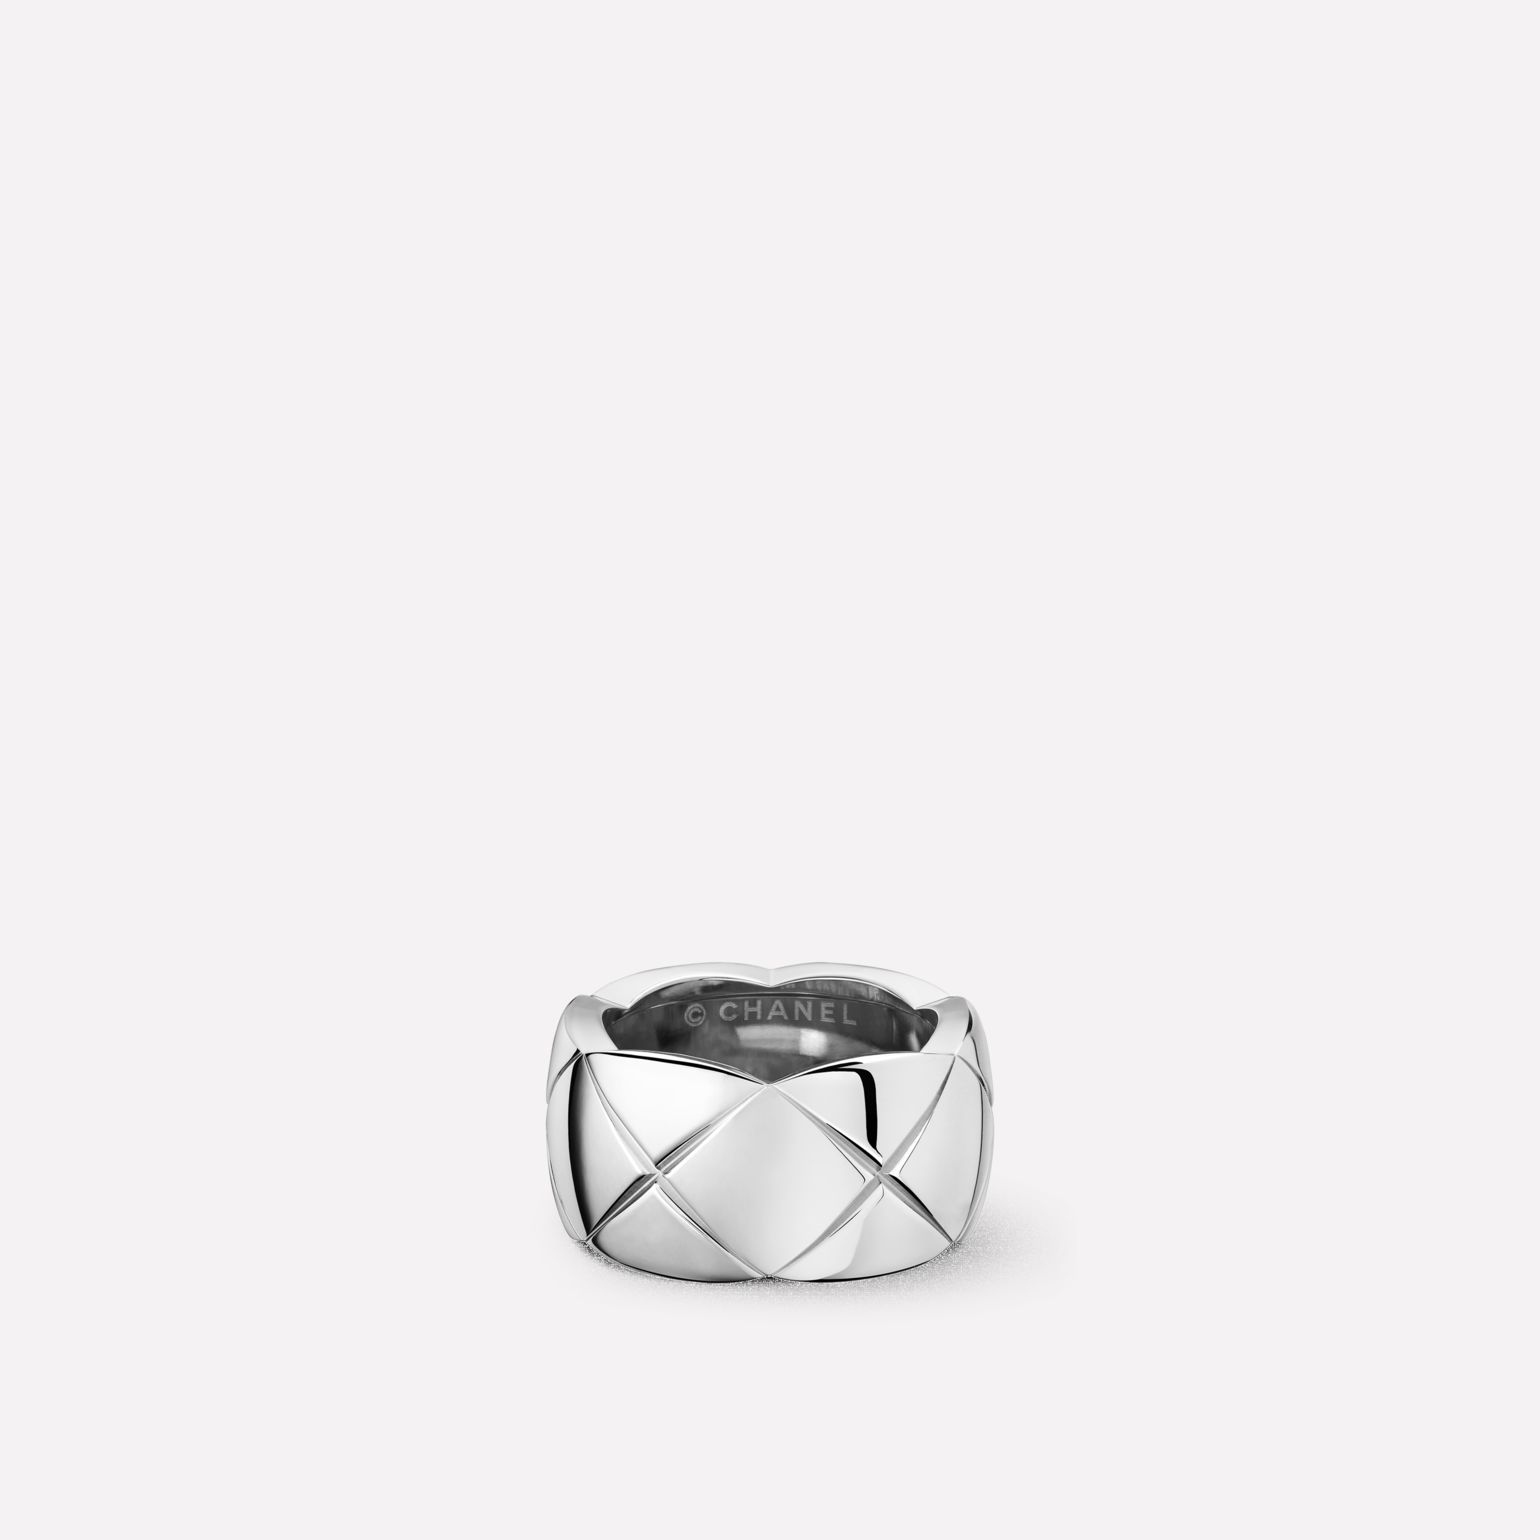 Coco Crush ring Quilted motif, large version, 18K white gold